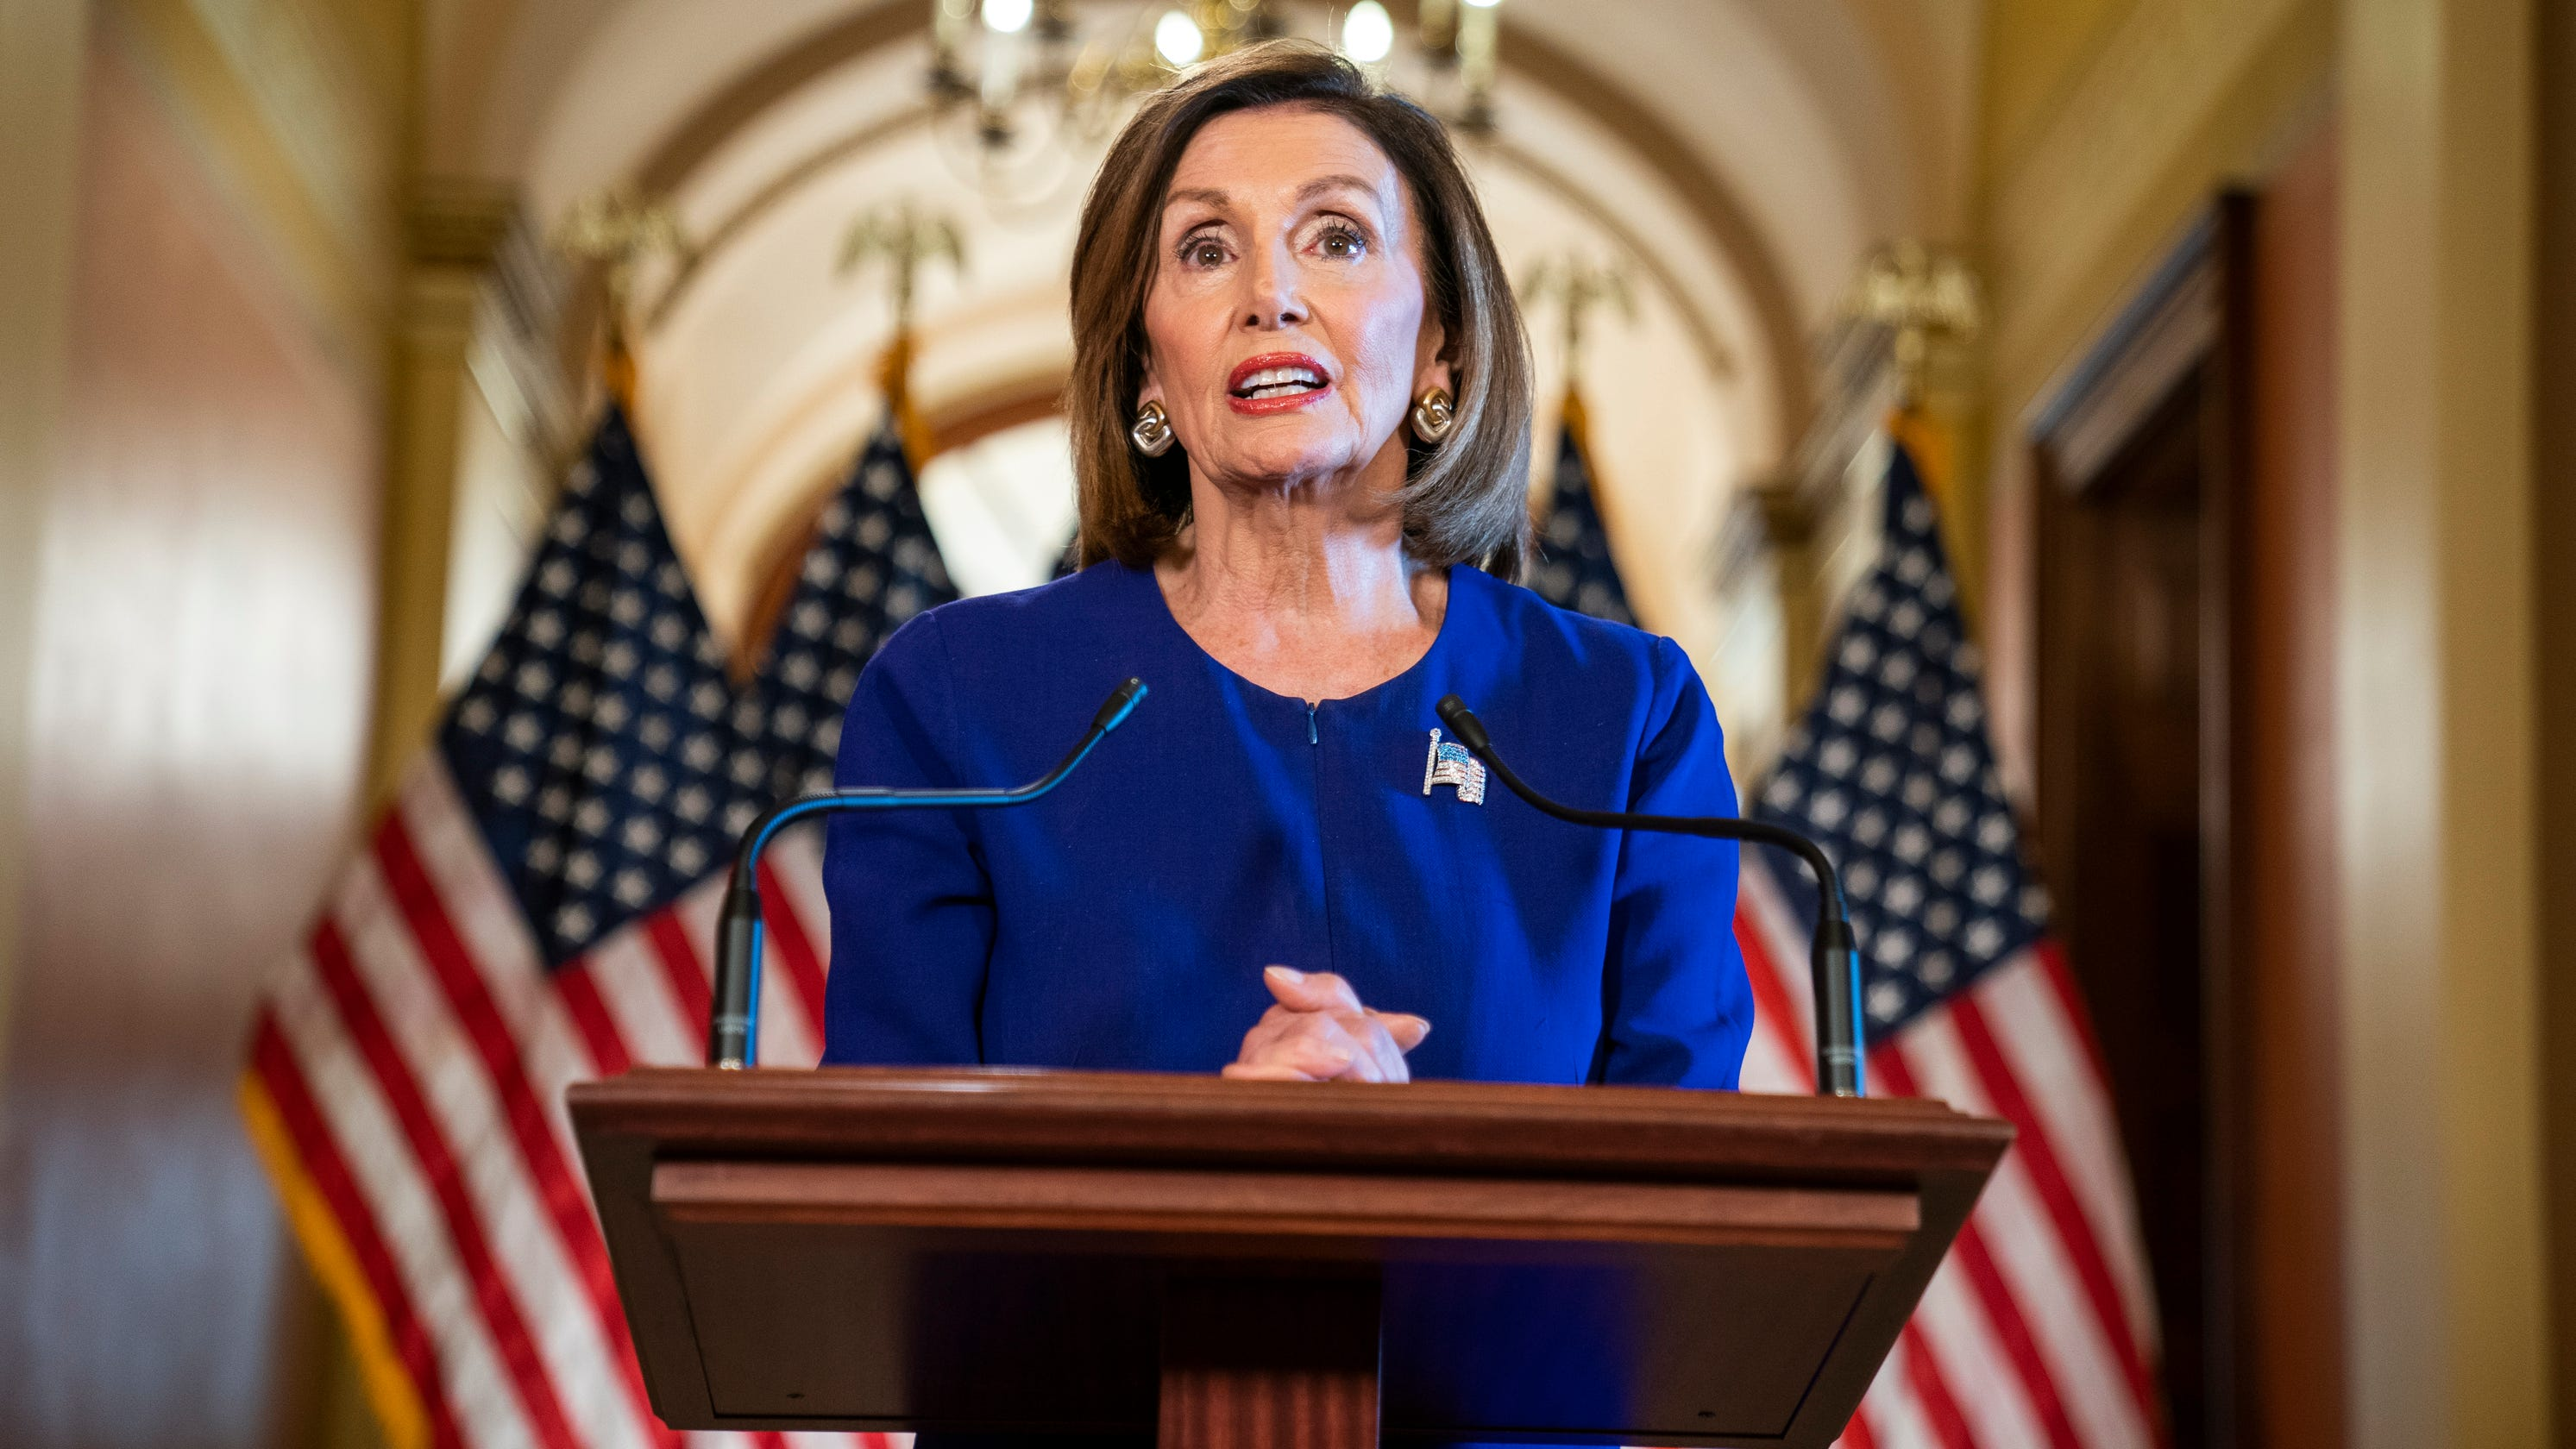 Pelosi v. Trump: Combatants in a historic impeachment showdown that will test them, and the nation